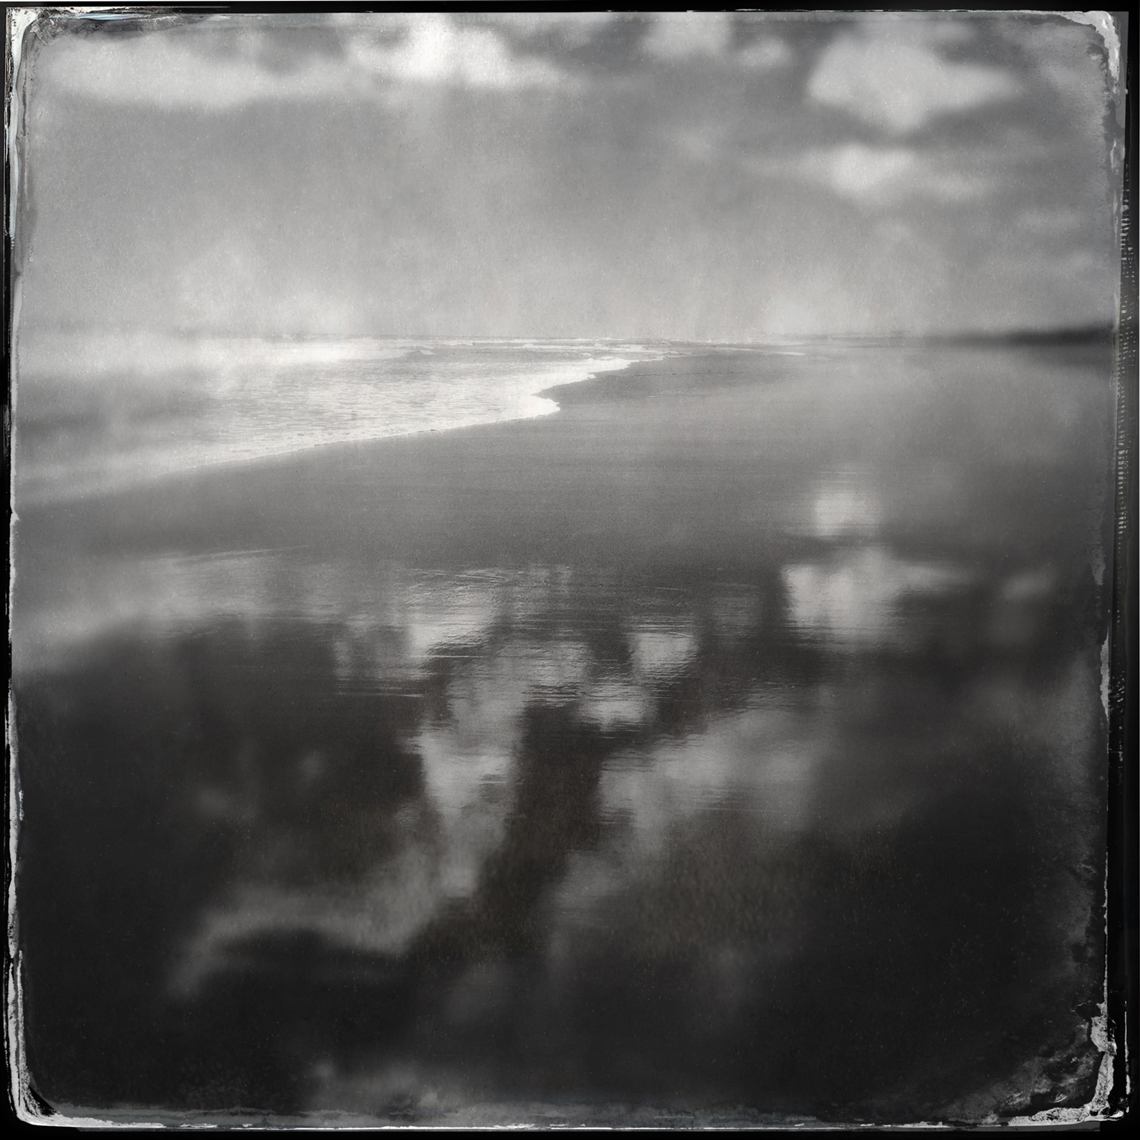 Jon Wyatt Photography - Wet sand on beach reflecting clouds. Hipstamatic